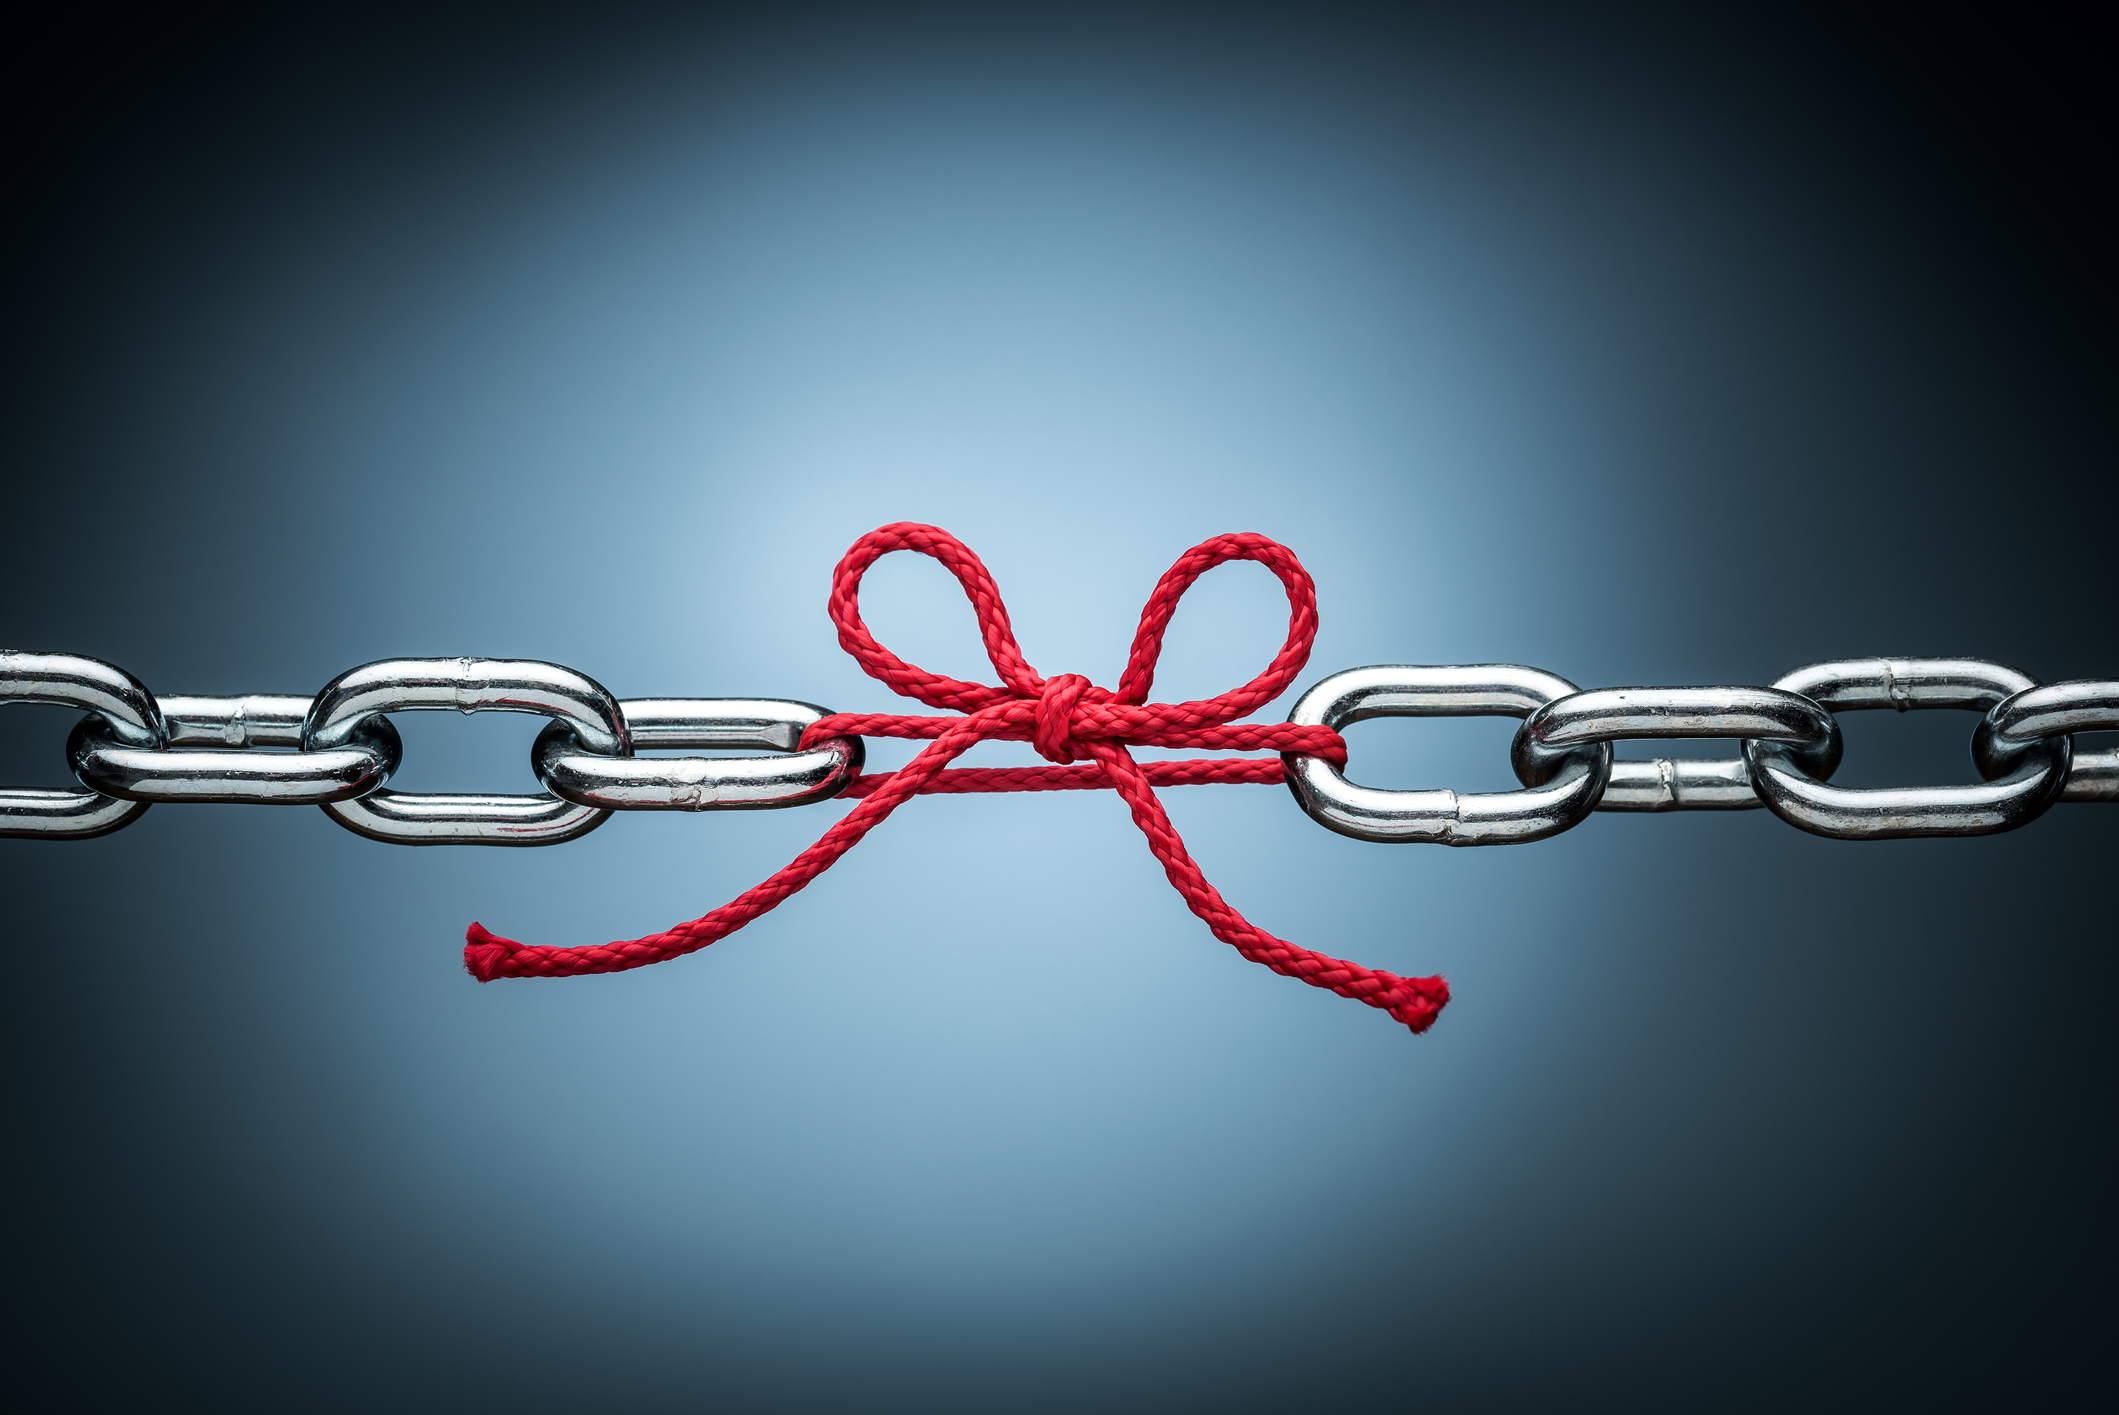 Two metal chains tied together with red string bow signifies the link between learning and strategy